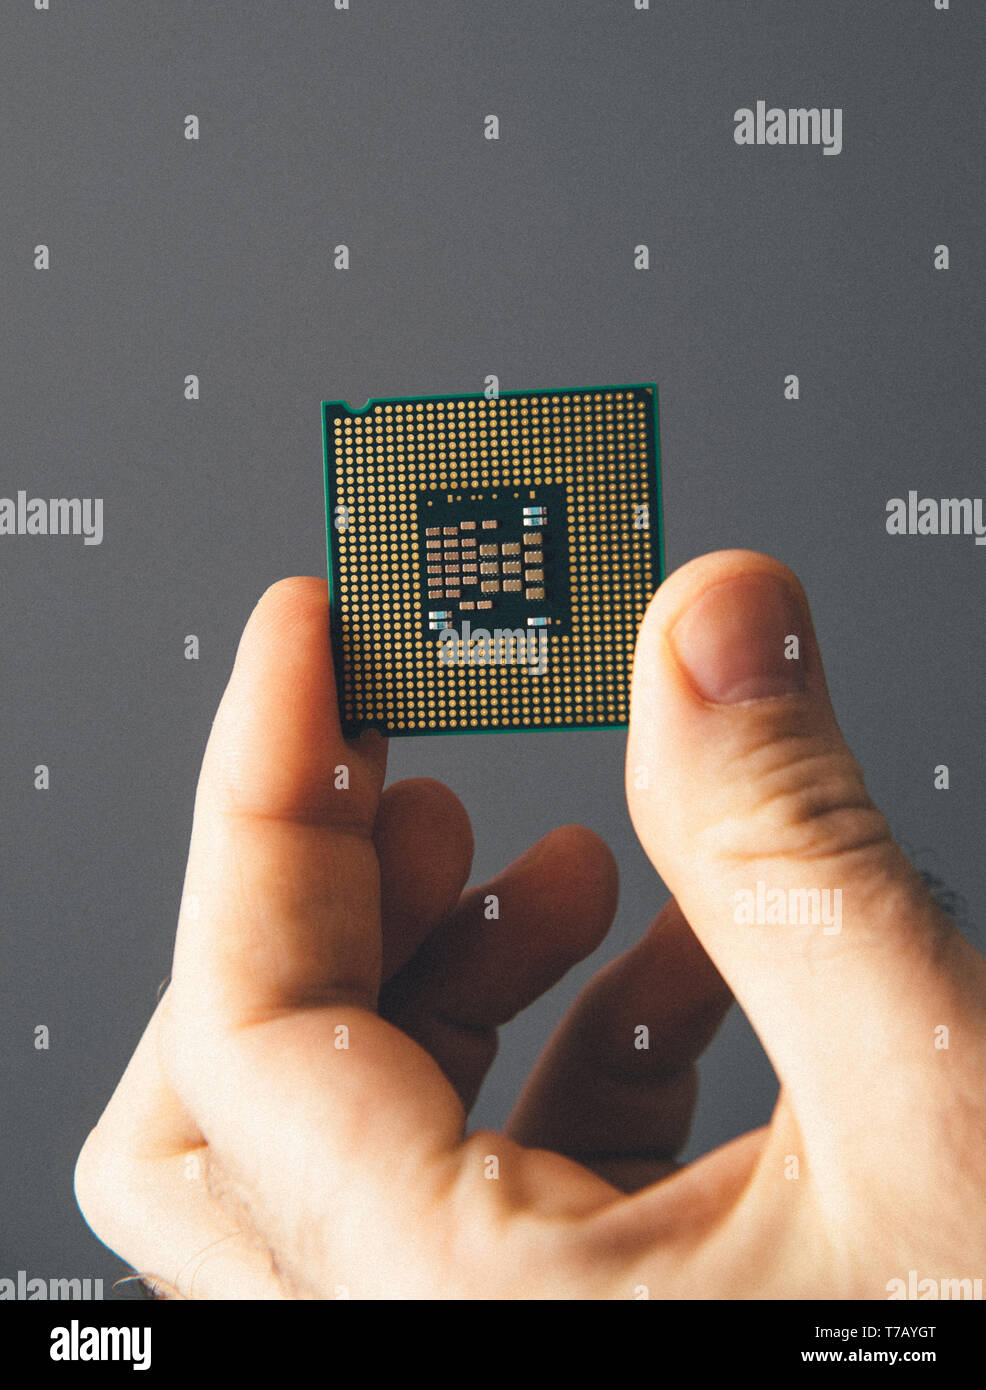 Male IT professional holding in hand new powerful CPU Central processing unit with high core count and elevated frequency - isolated on gray office background - Stock Image